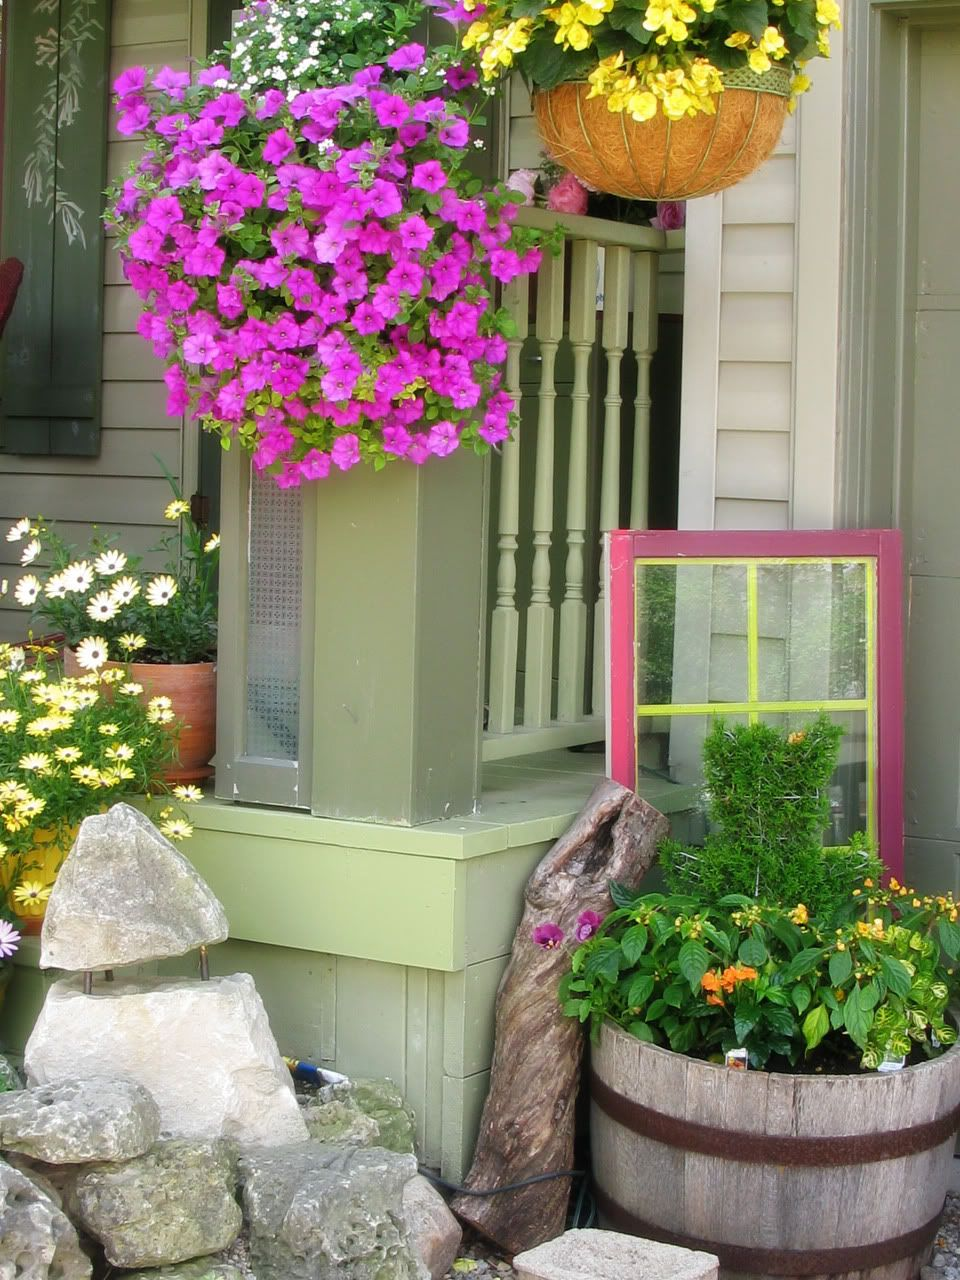 Garden Junk Ideas | More Garden Junk/Art & Accoutrement Ideas | How ...